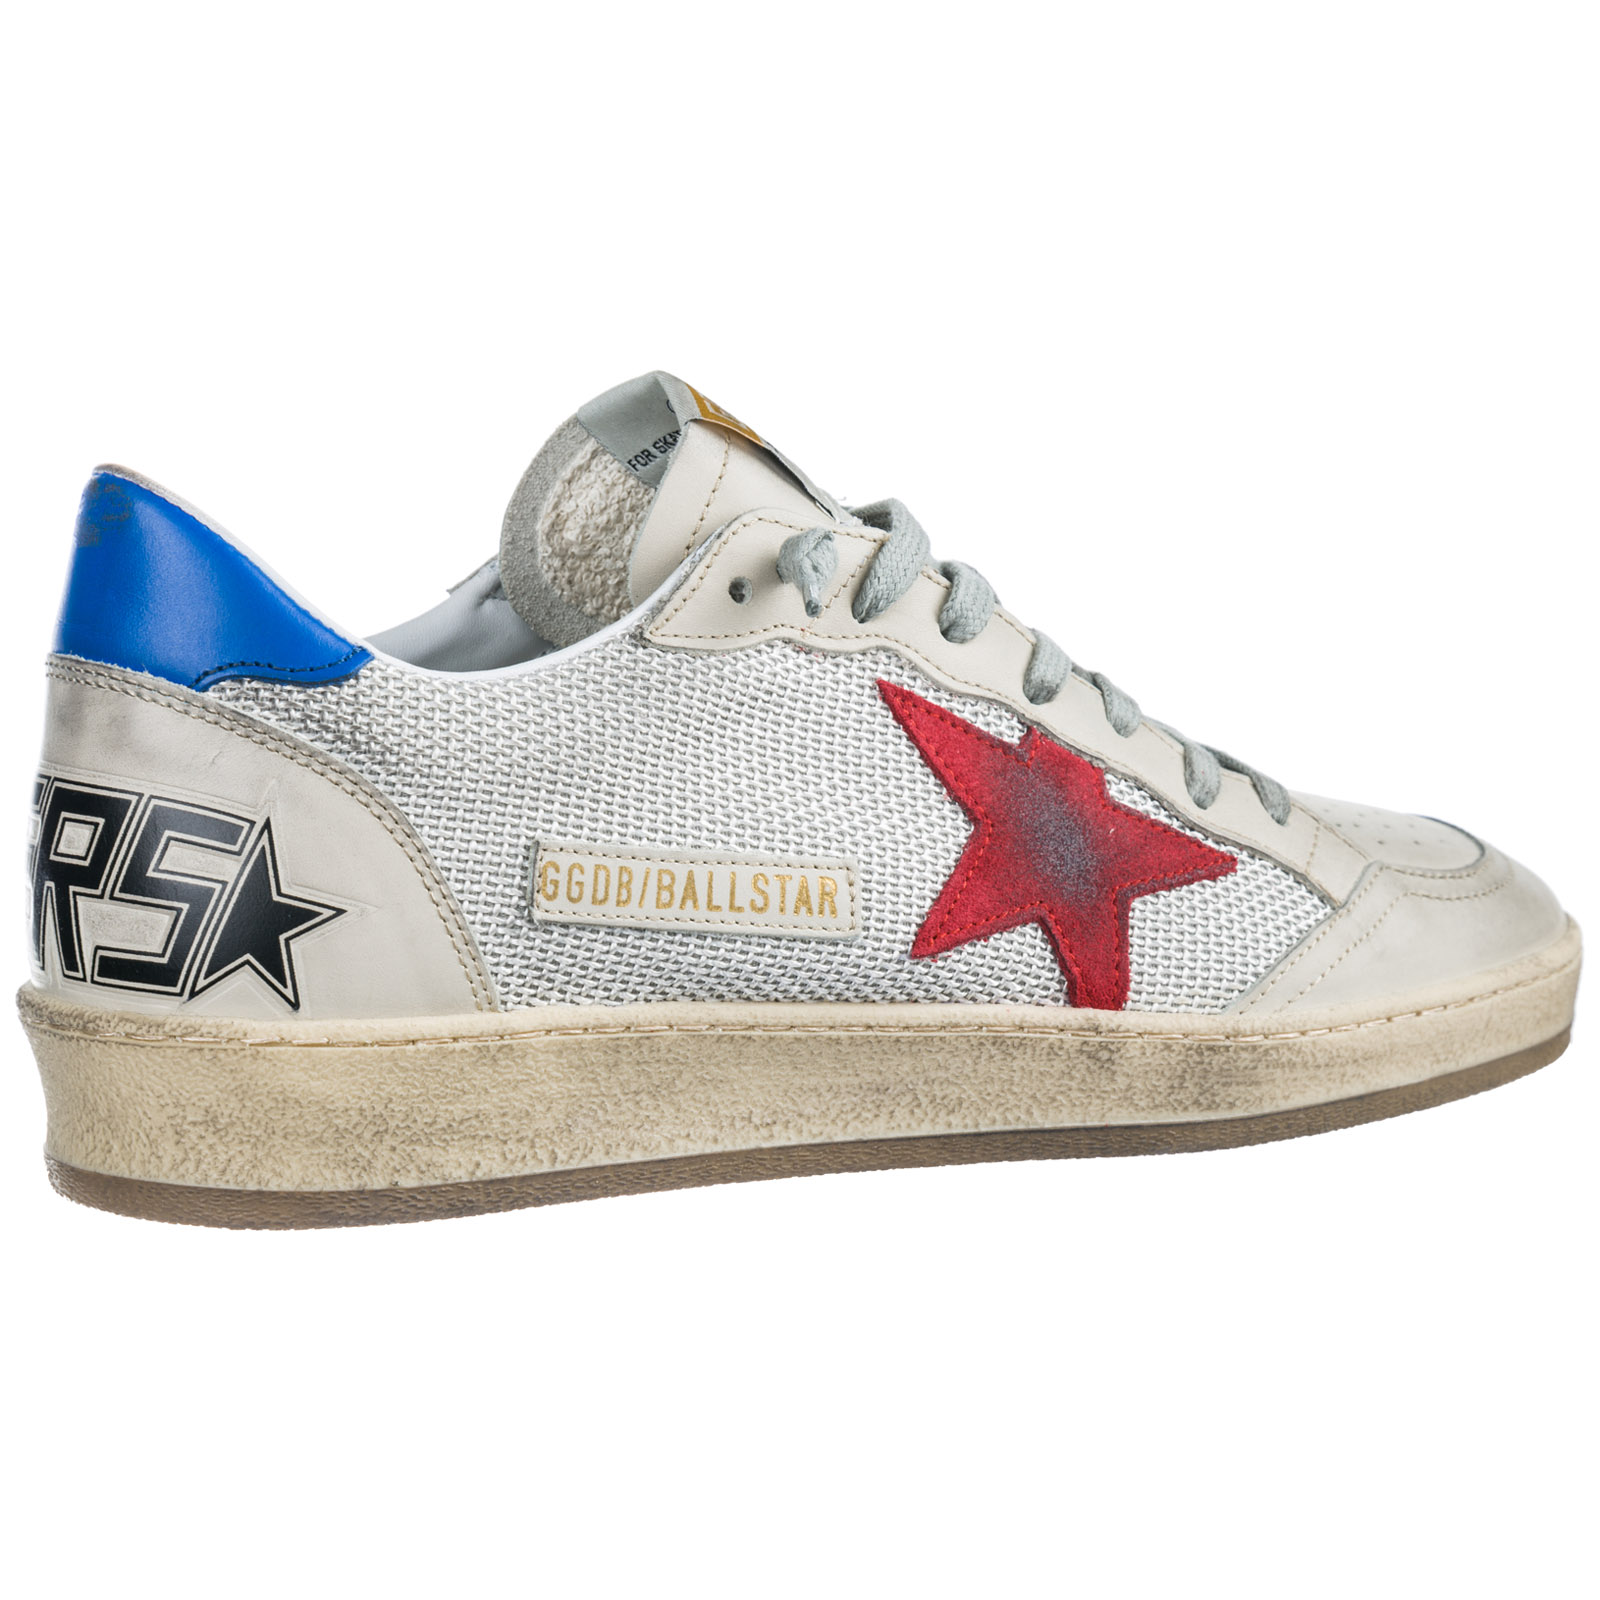 Men's shoes leather trainers sneakers ball star